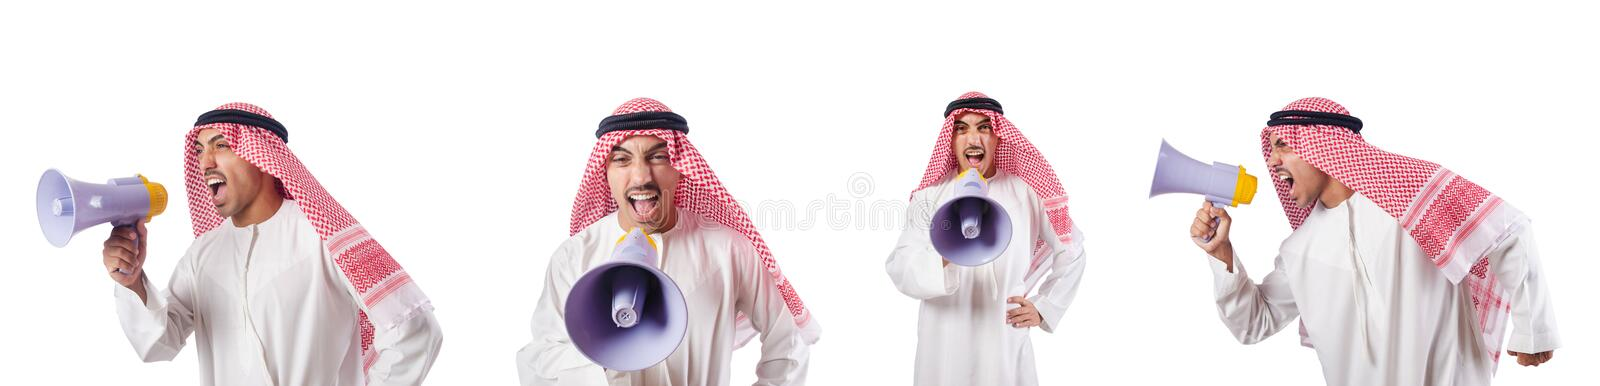 The arab businessman with bullhorn isolated on white. Arab businessman with bullhorn isolated on white royalty free stock image